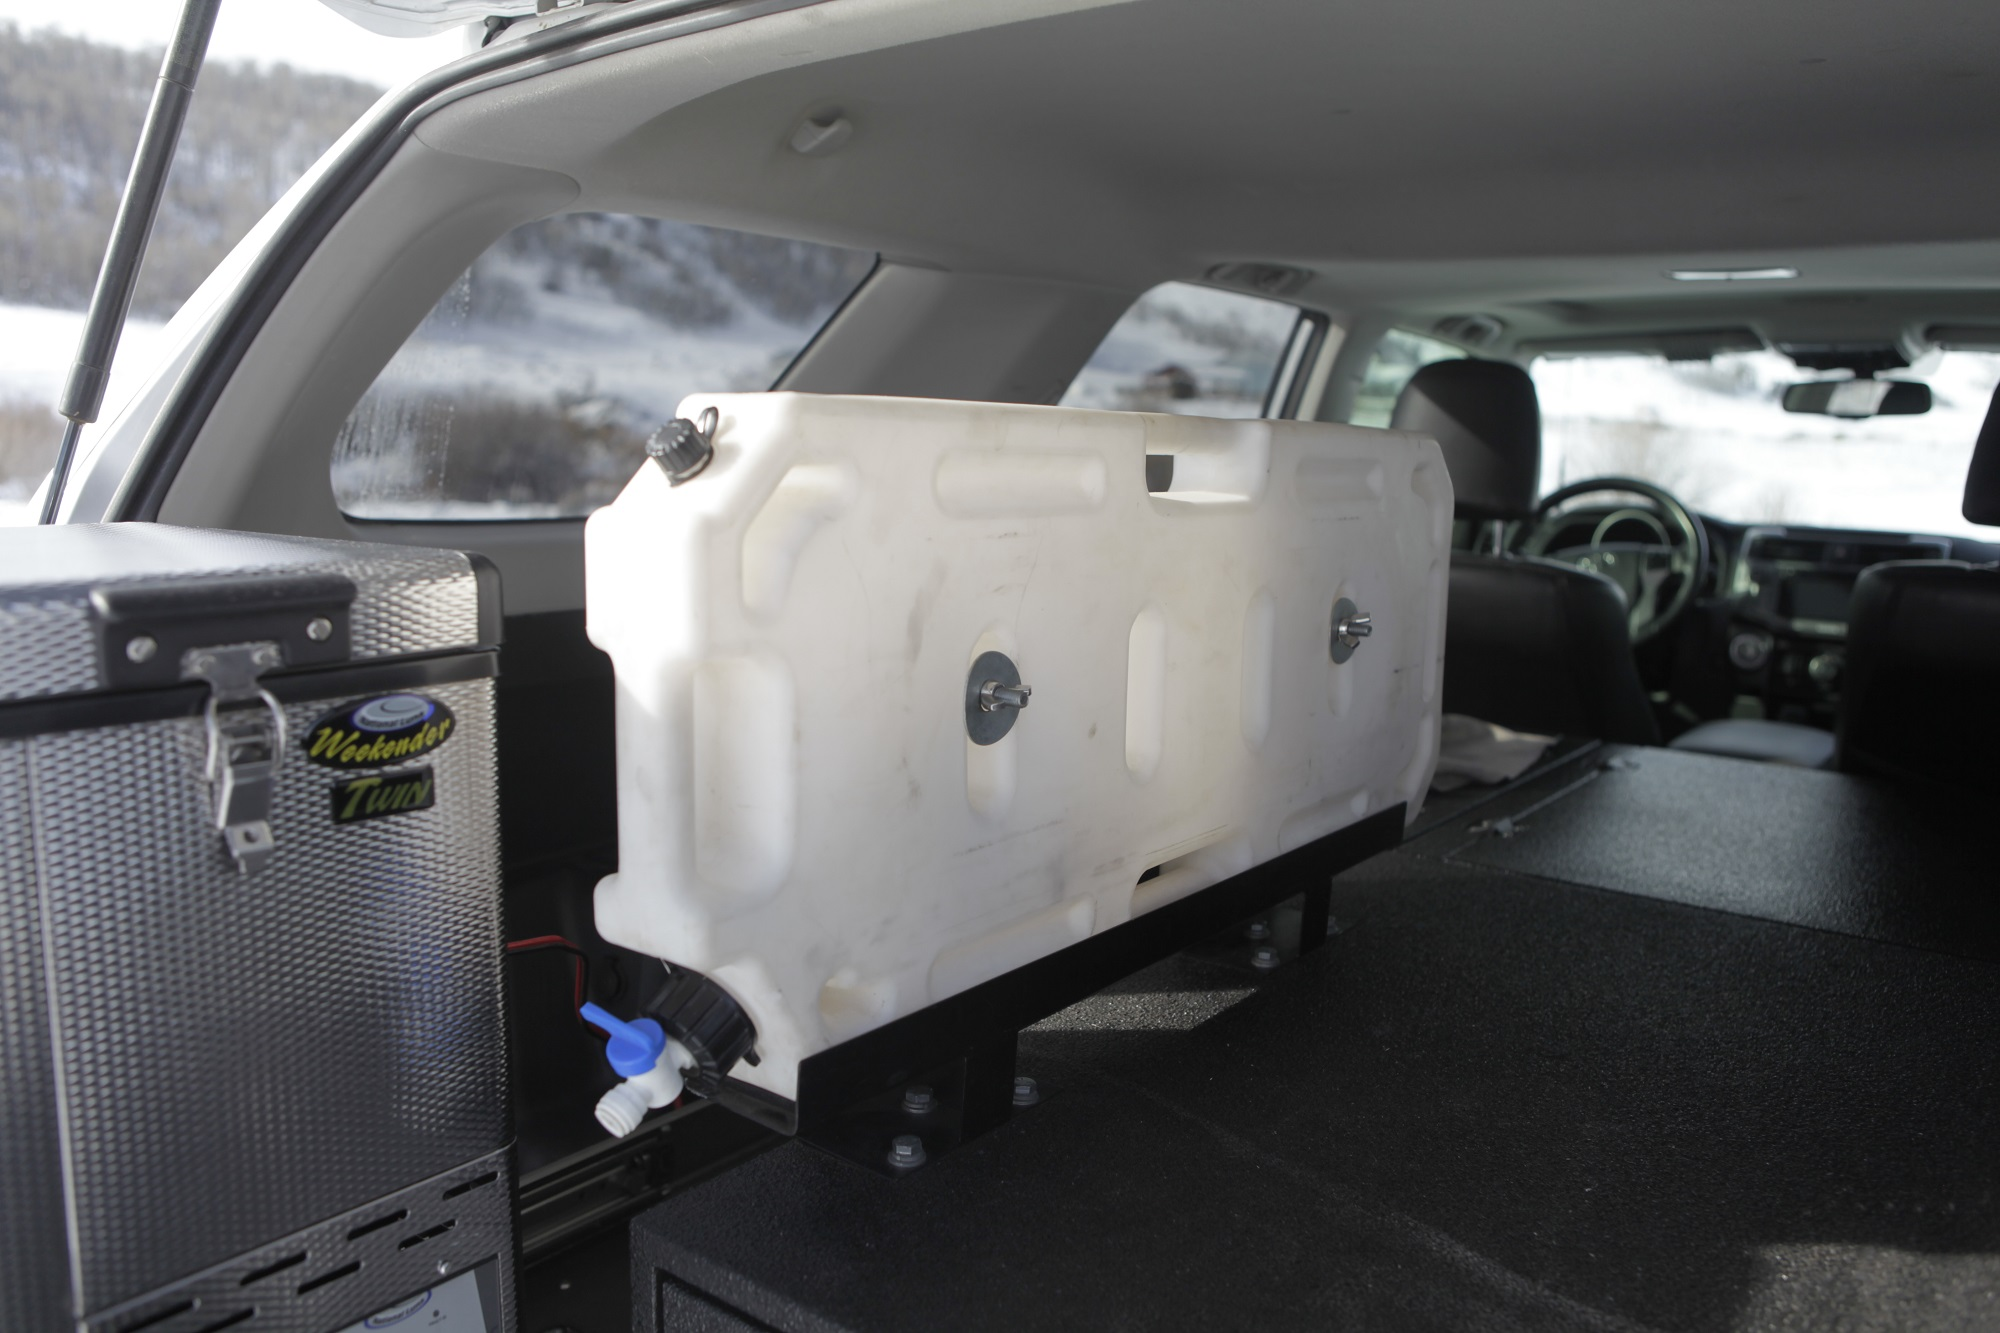 La Aduana Equipt rsquo s 2013 Toyota 4Runner ndash Expedition Portal